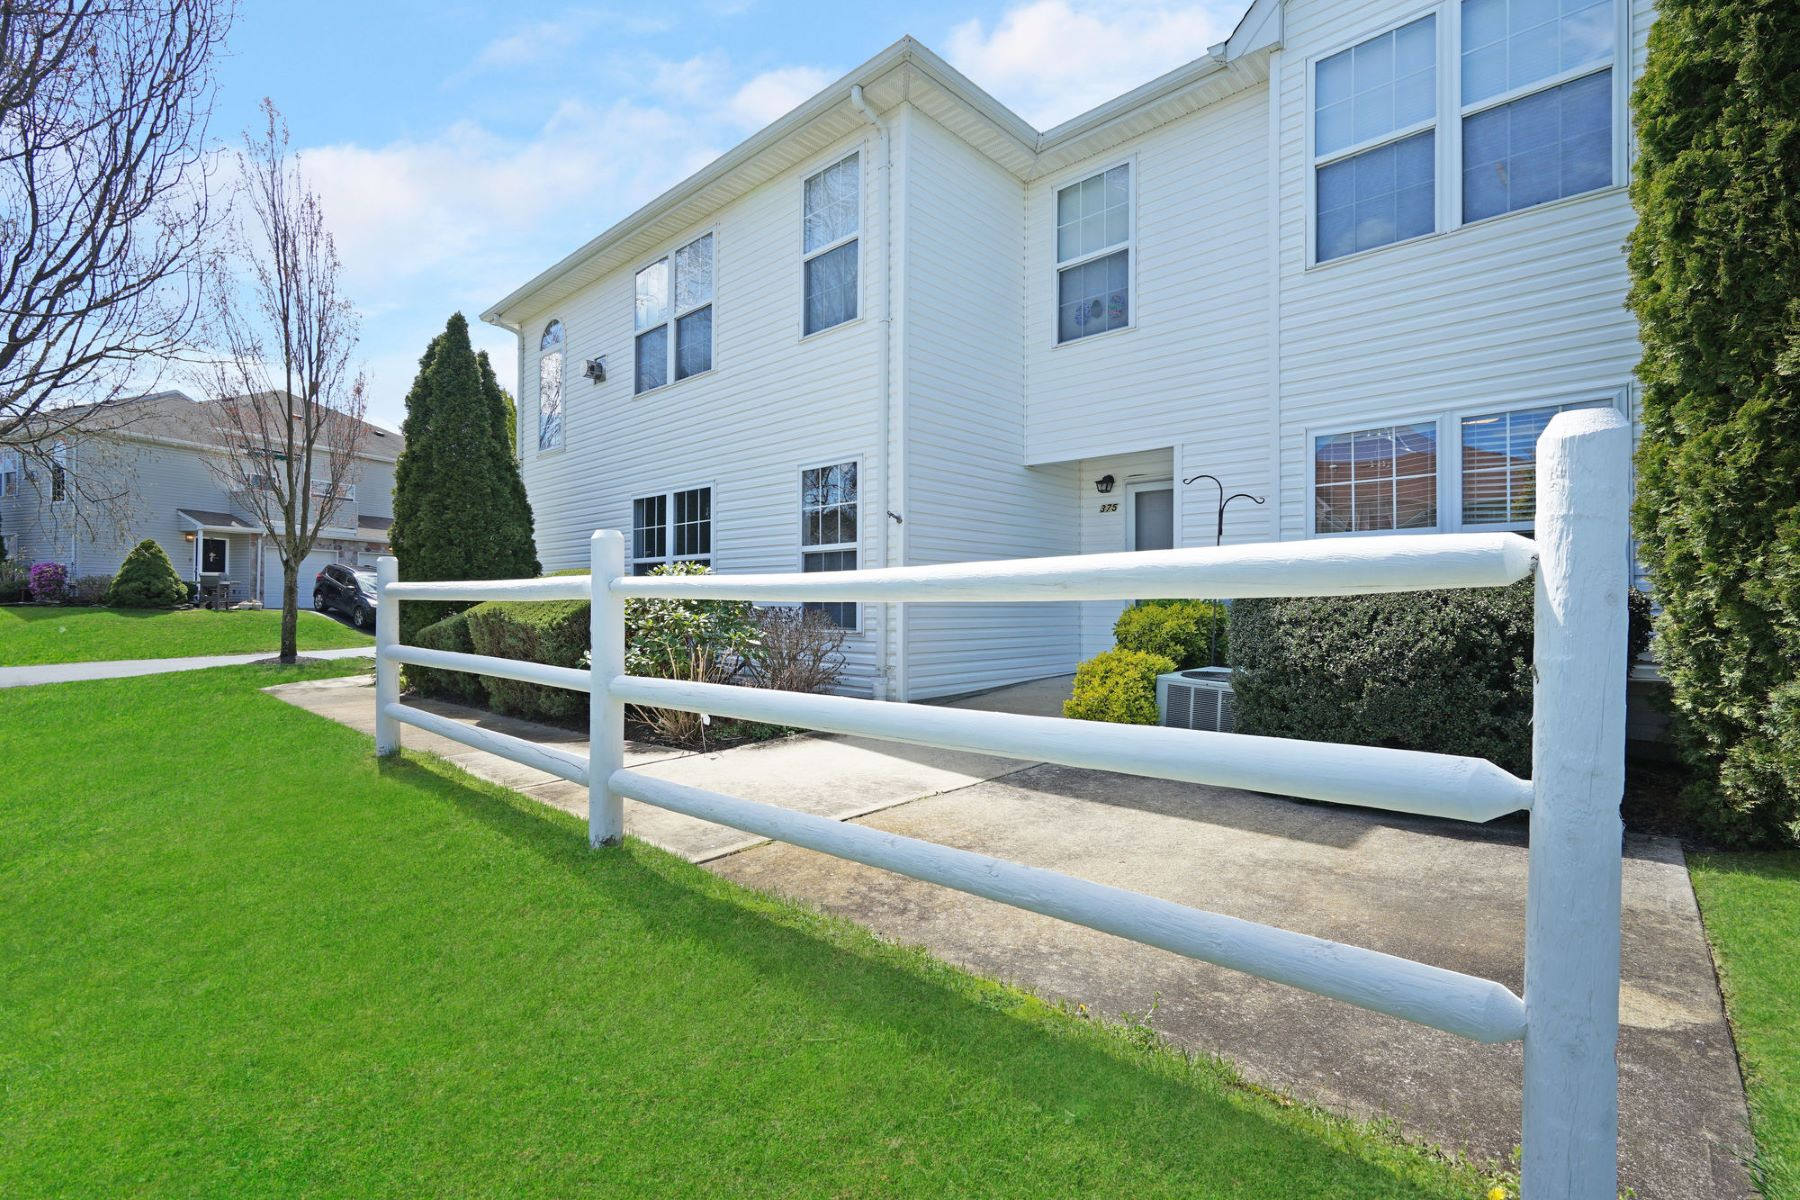 Condominiums for Sale at Allaire Country Club Estates 375 Deuce Drive Wall, New Jersey 07719 United States